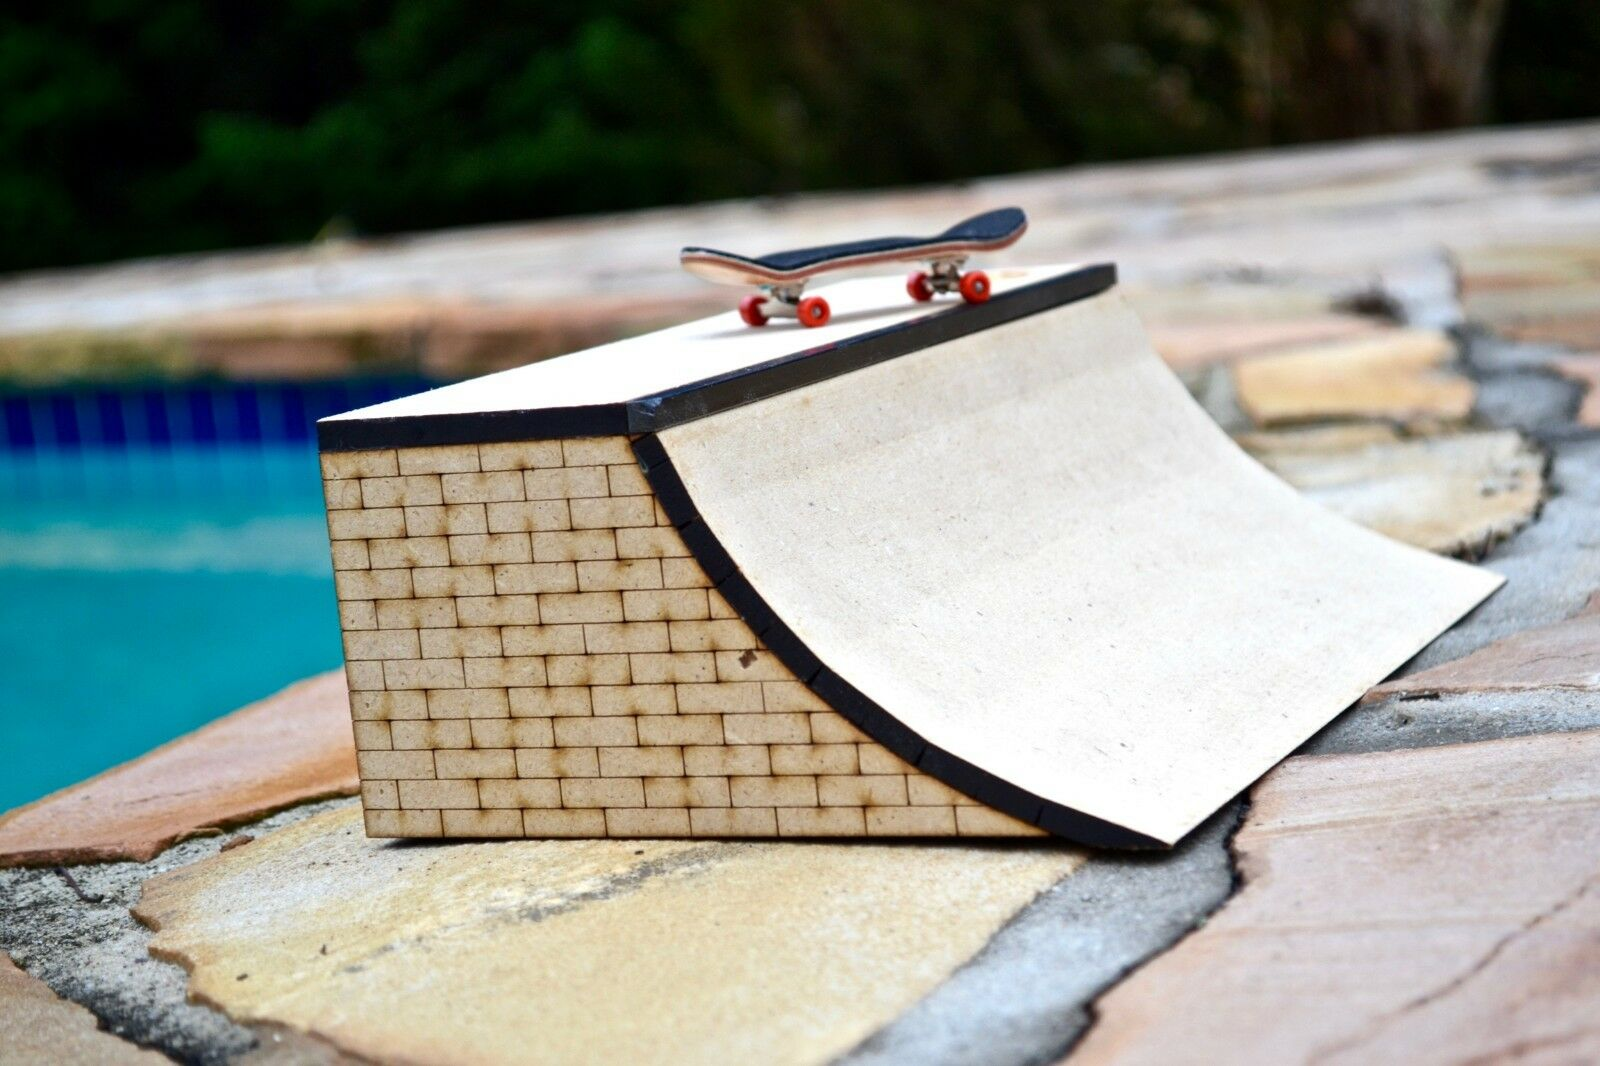 Fingerboard Fingerboard Fingerboard Ramp Obstacle Mini Quarter Pipe 7012ab